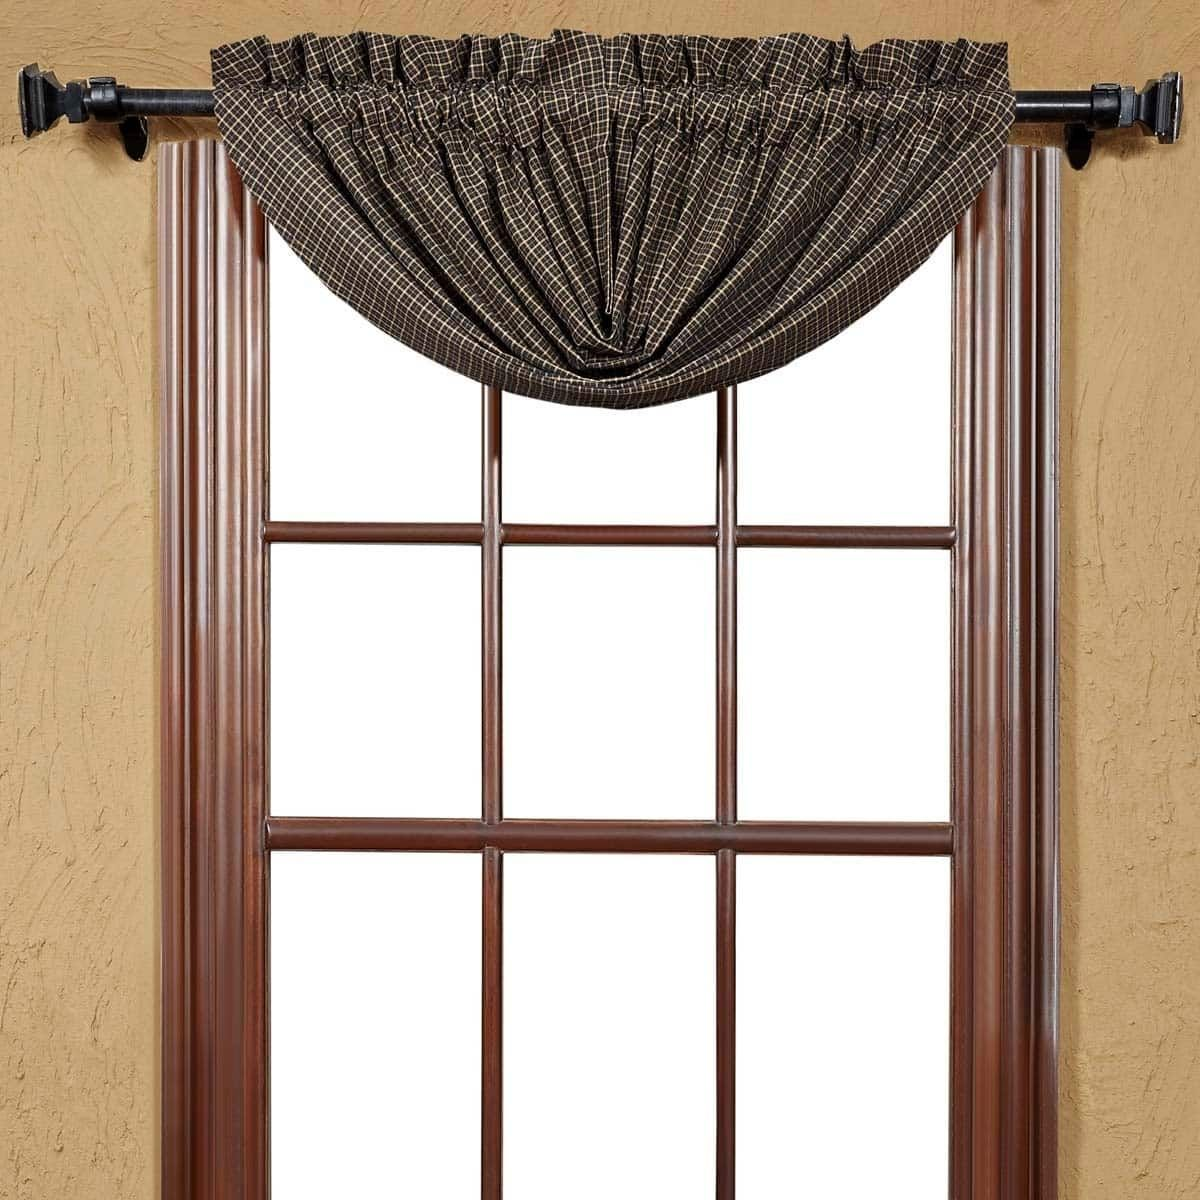 Popular window coverings  vhc brands kettle grove lined plaid balloon valance   products